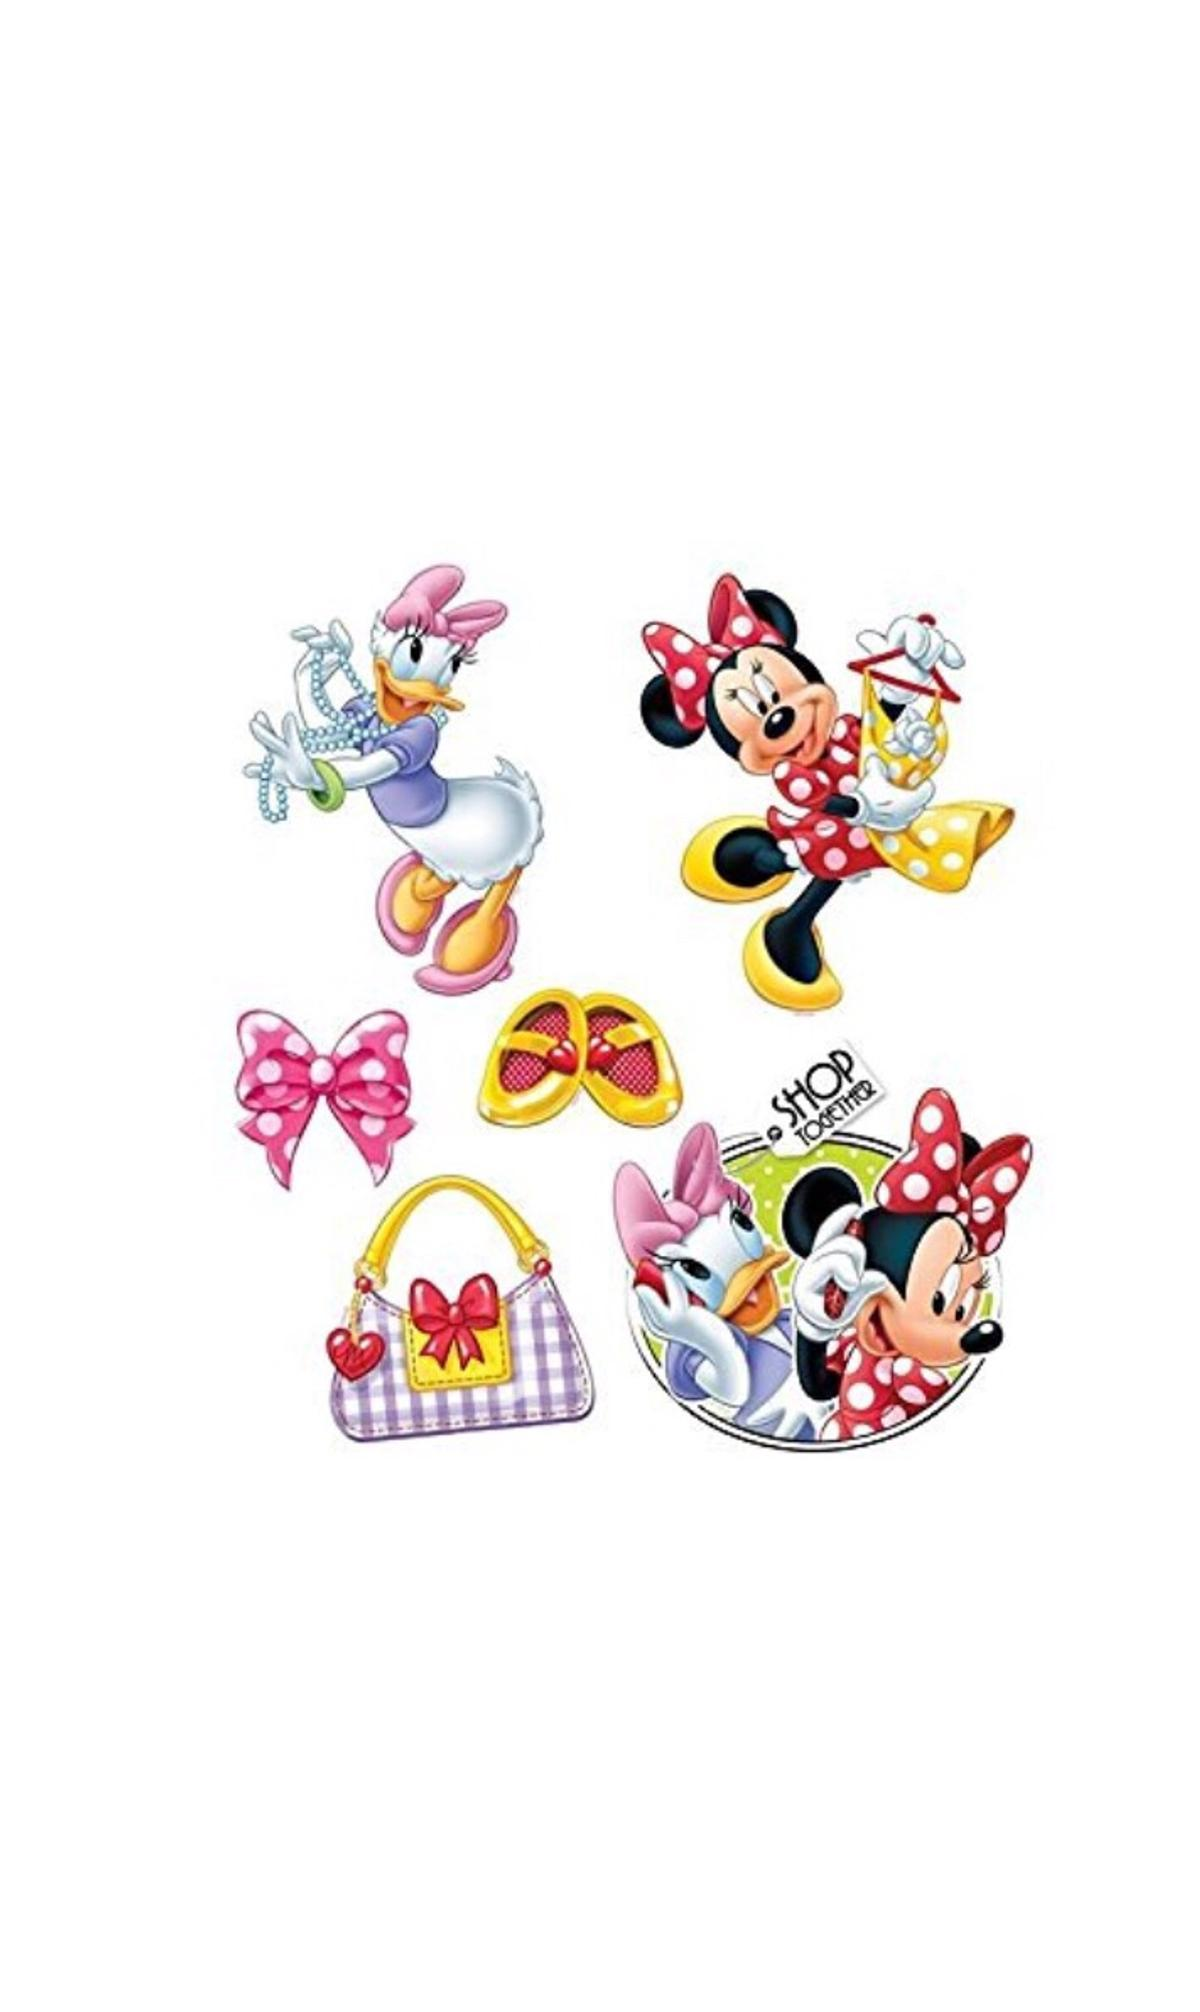 Disney Wandtattoo Minnie Mouse / Daisy in 87700 Memmingen für 12,00 ...